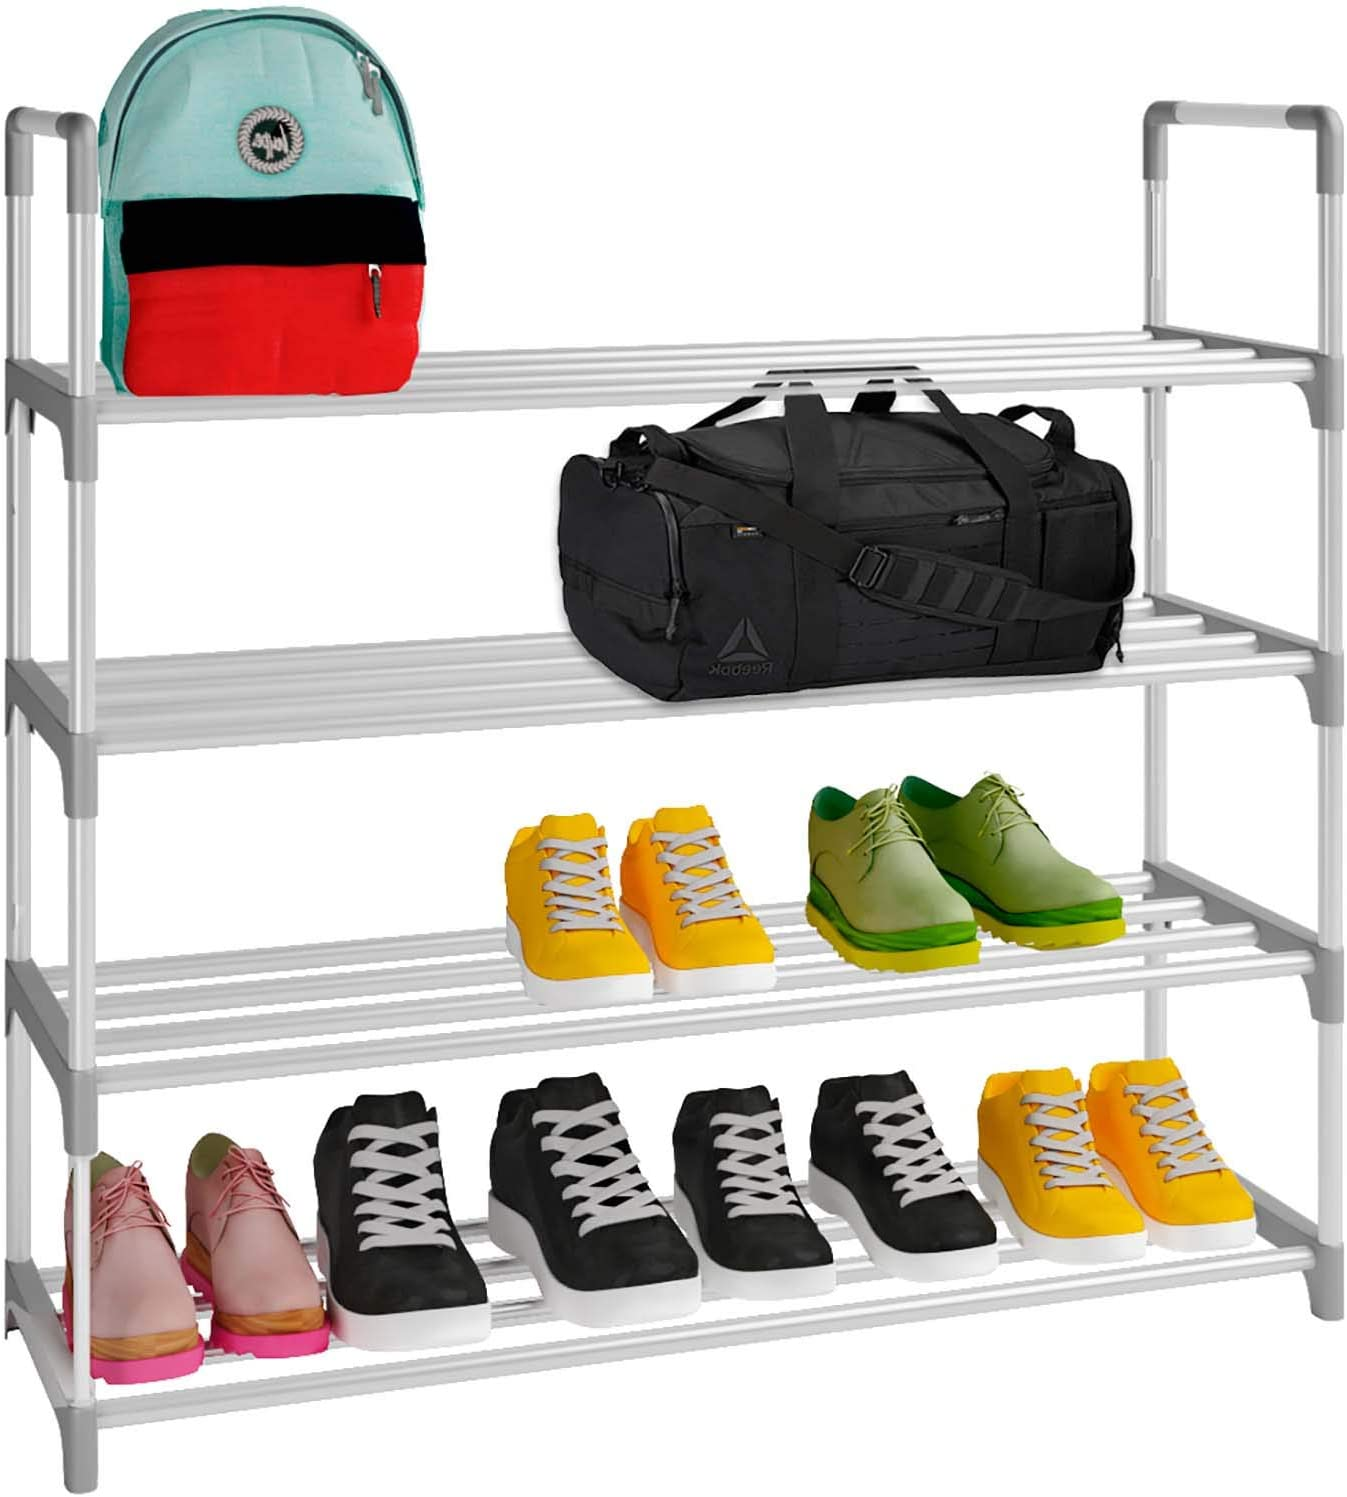 Home Intuition 4-Tier Shoe Rack Organizer Tower Shelf Storage for 20 Pairs, Grey